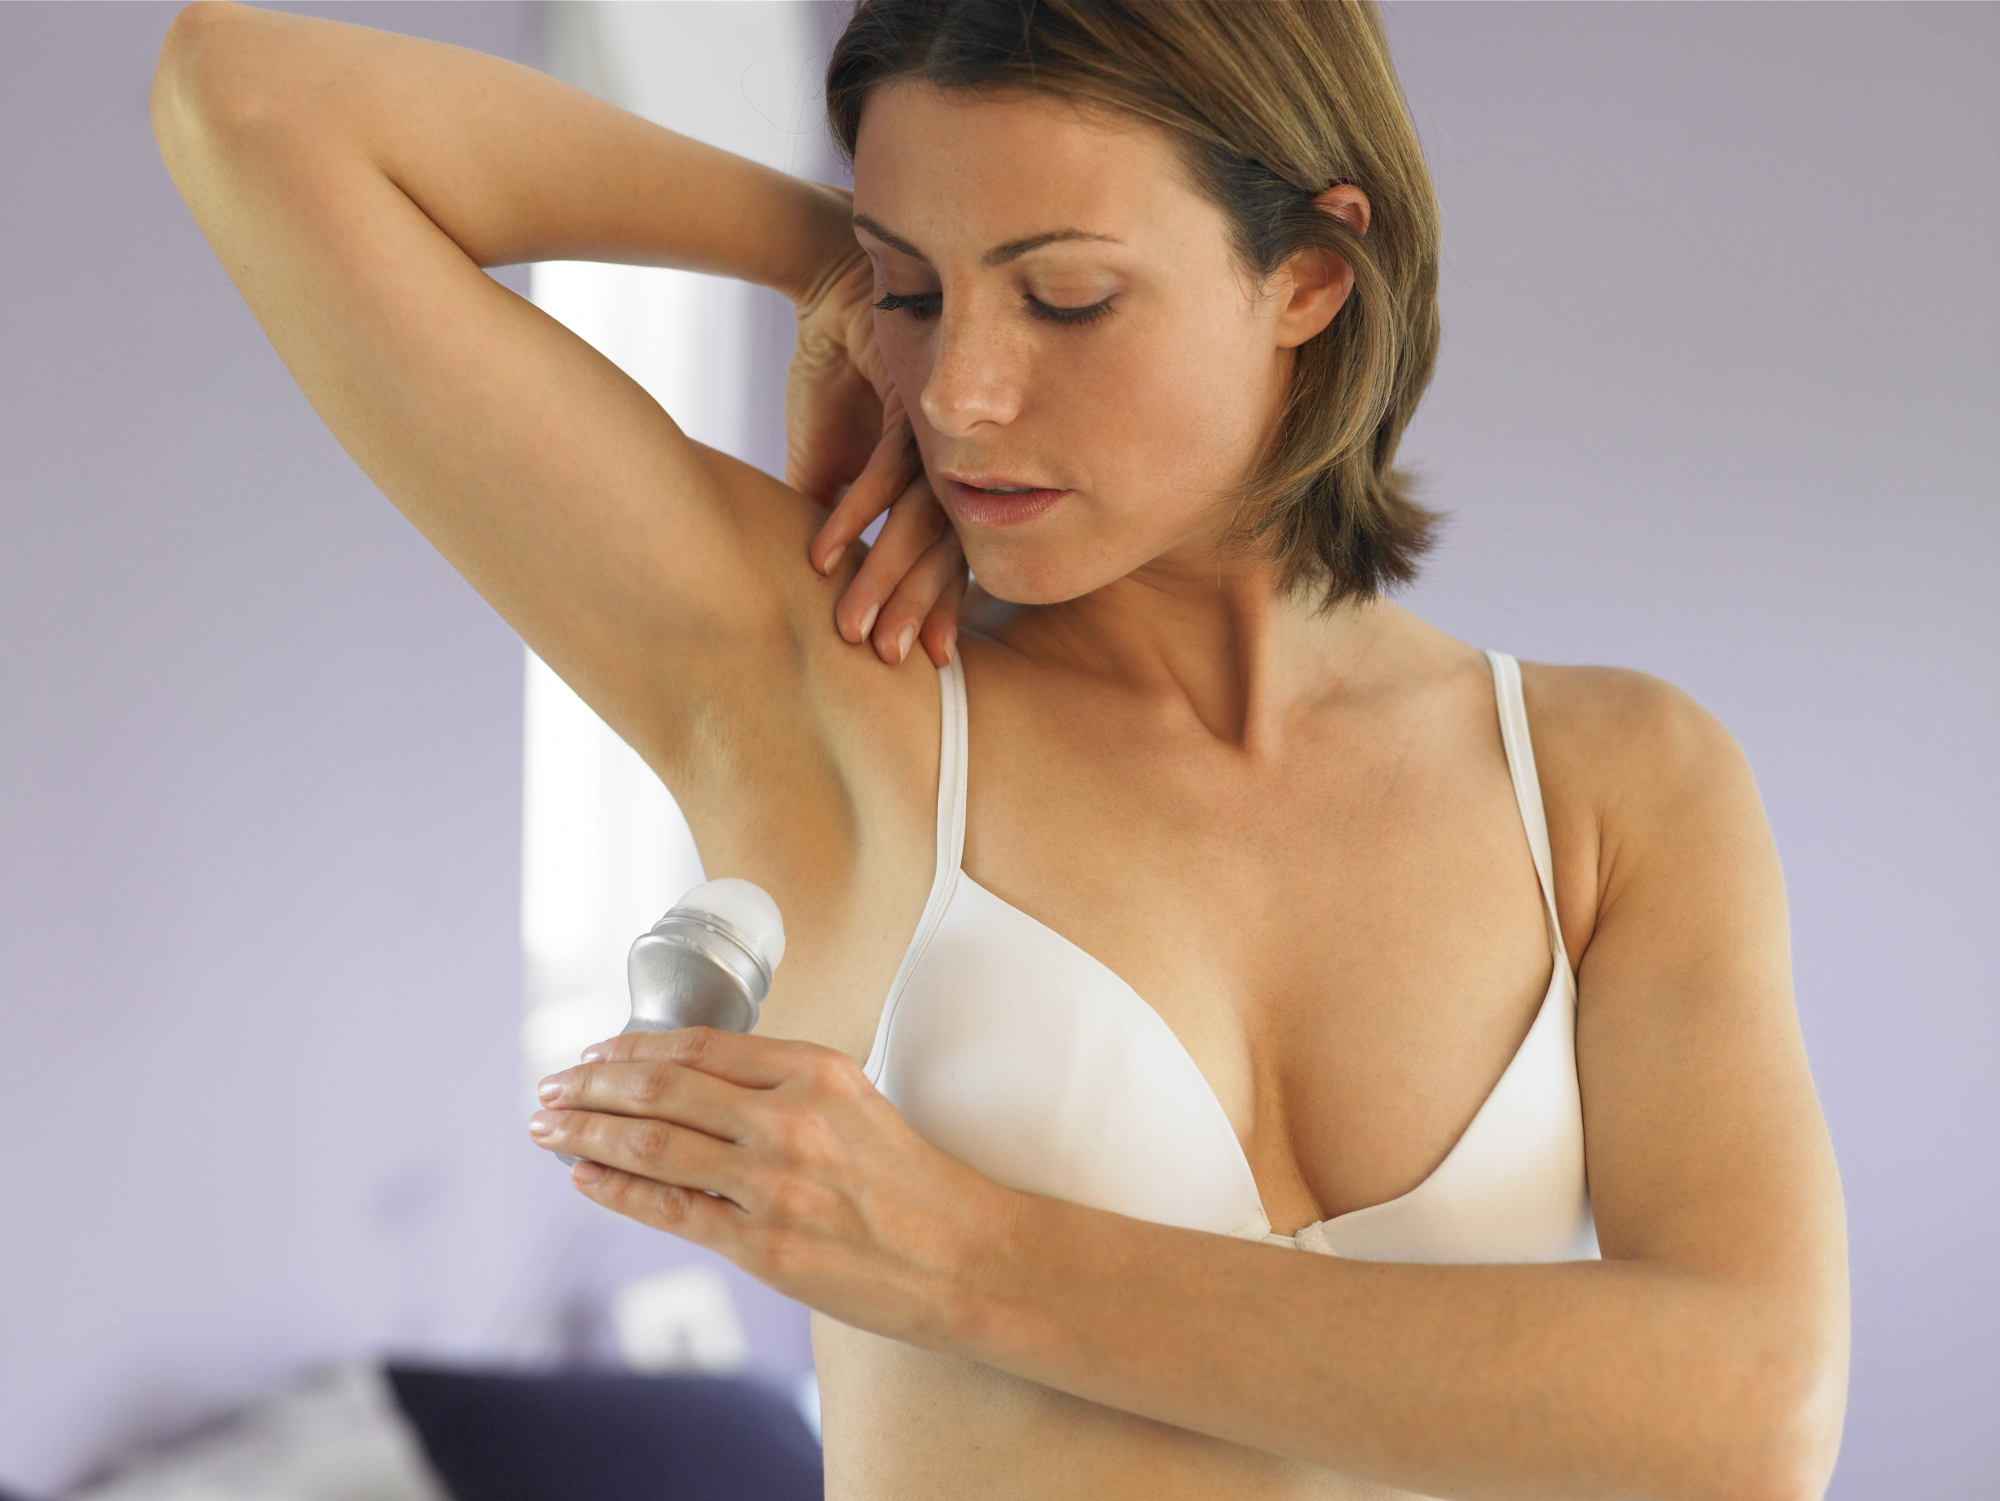 what are the causes of body odor in women? | livestrong